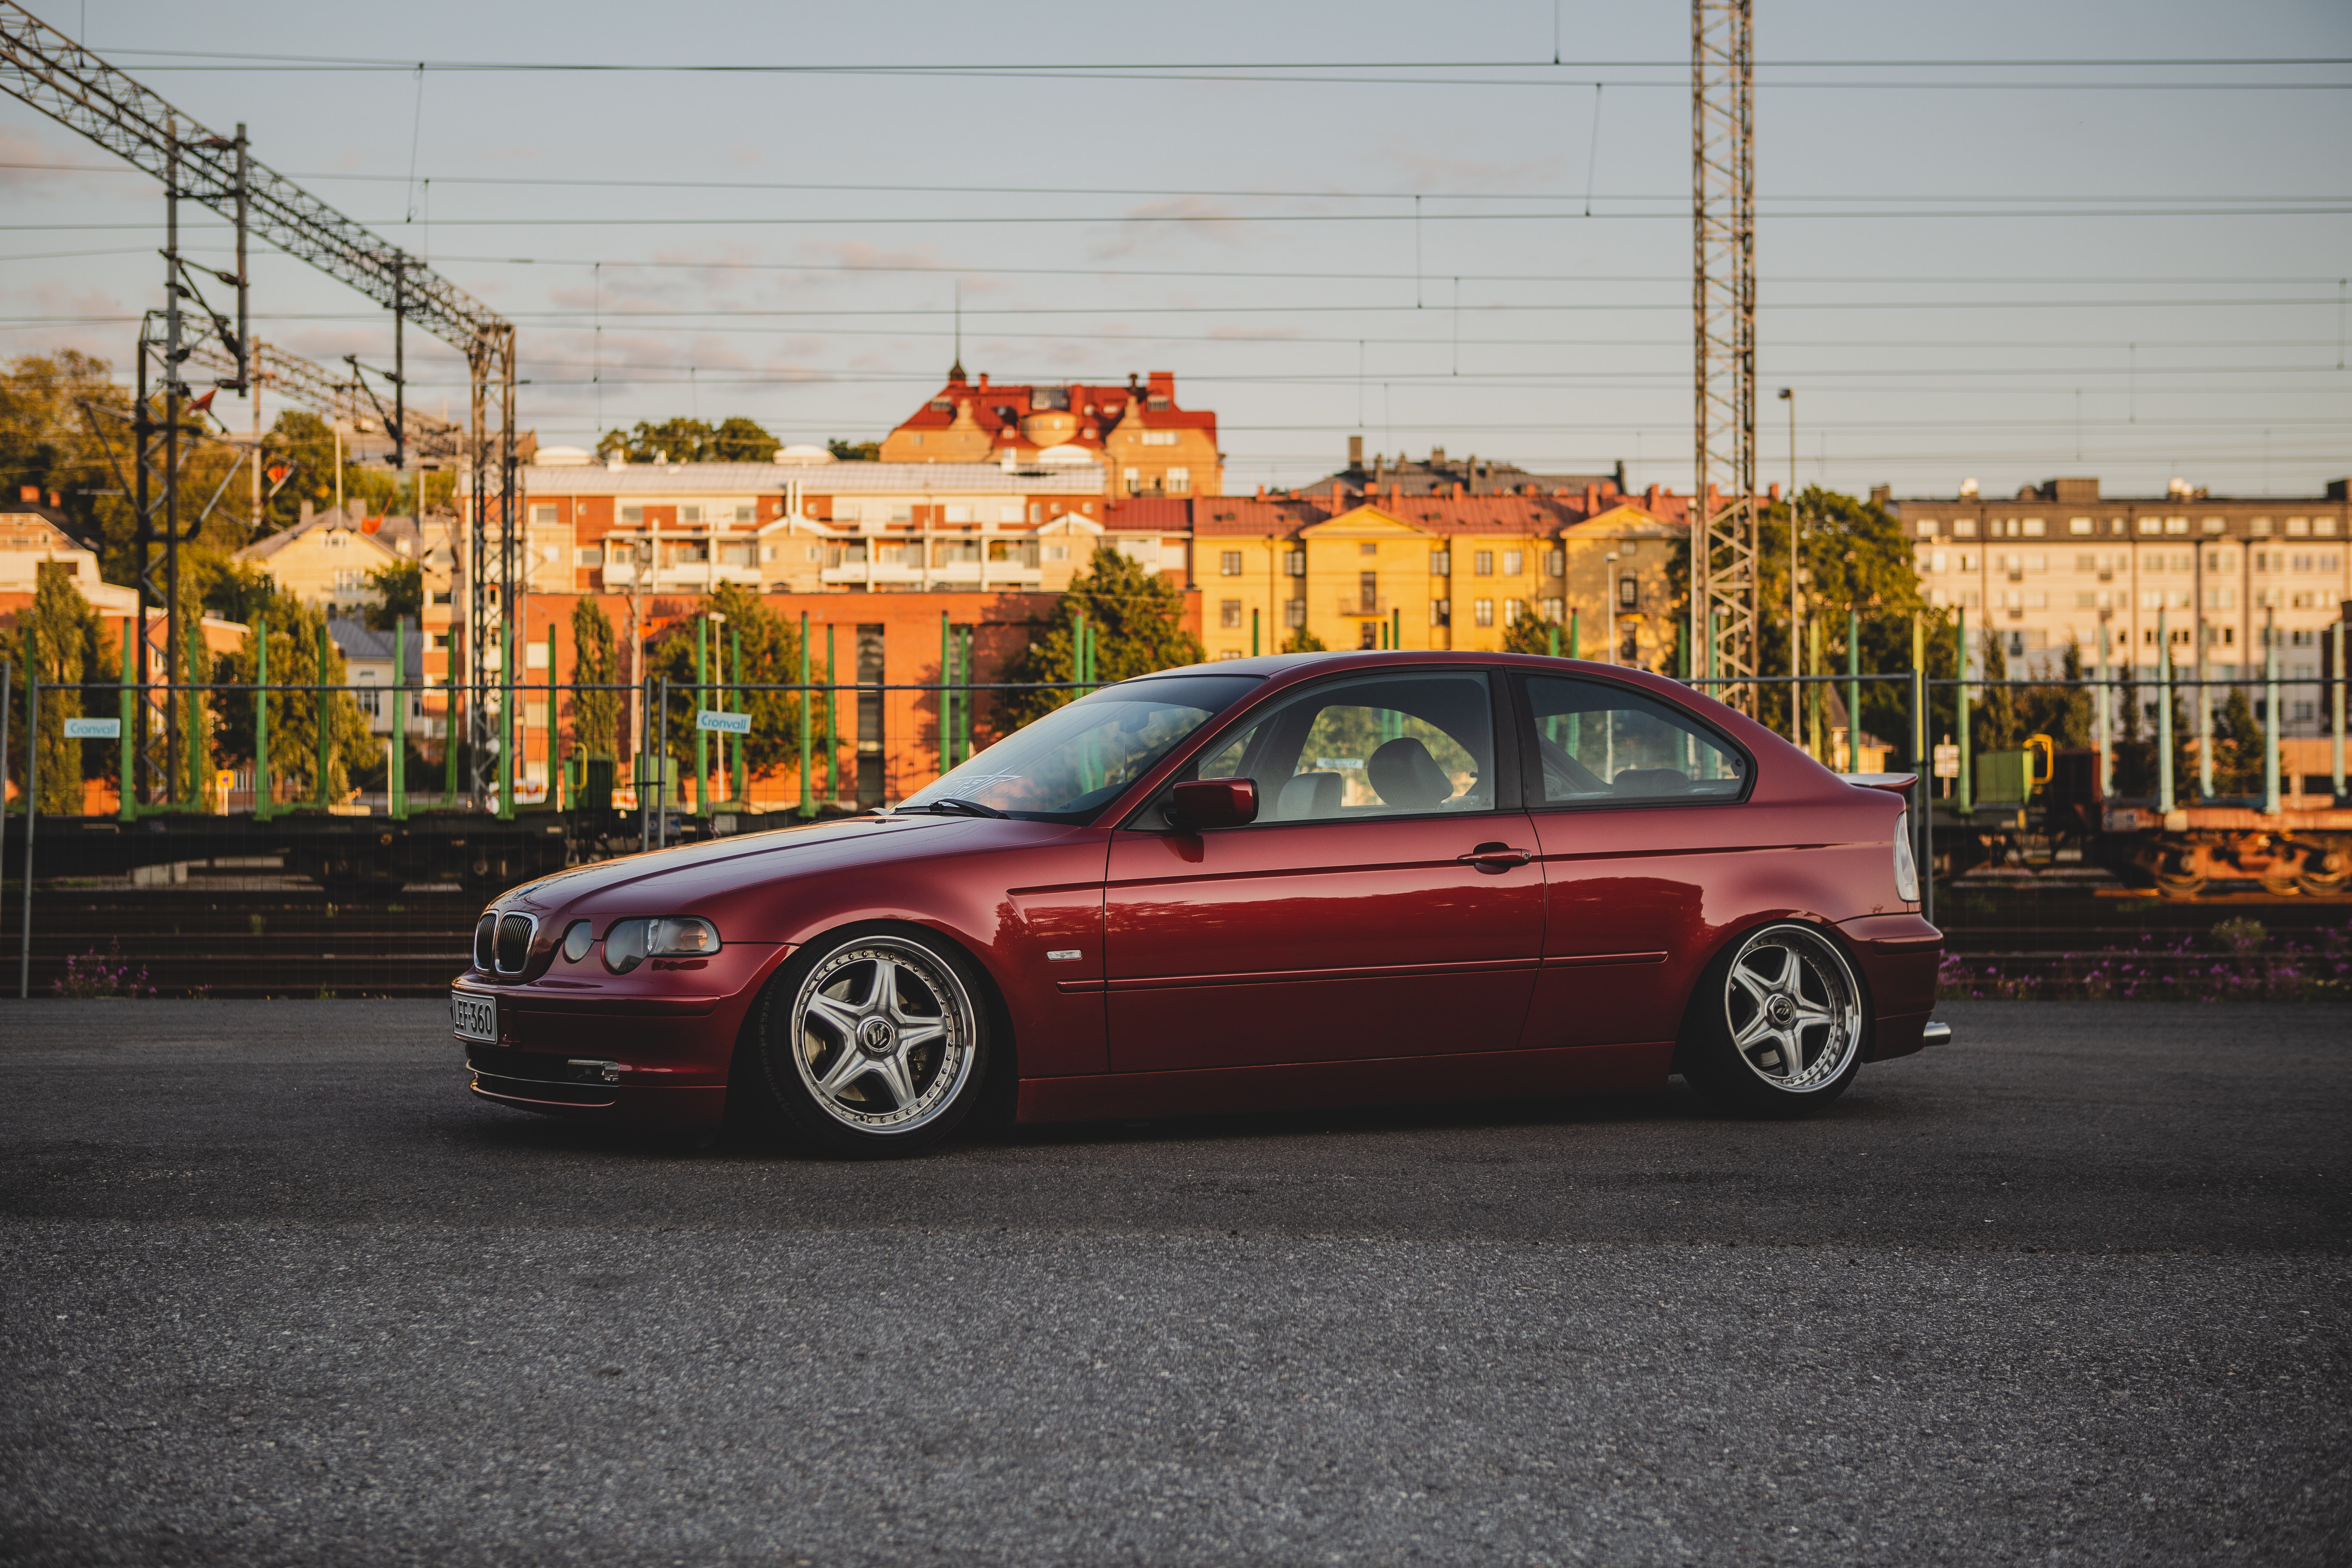 red BMW 3 series E46 coupe on road